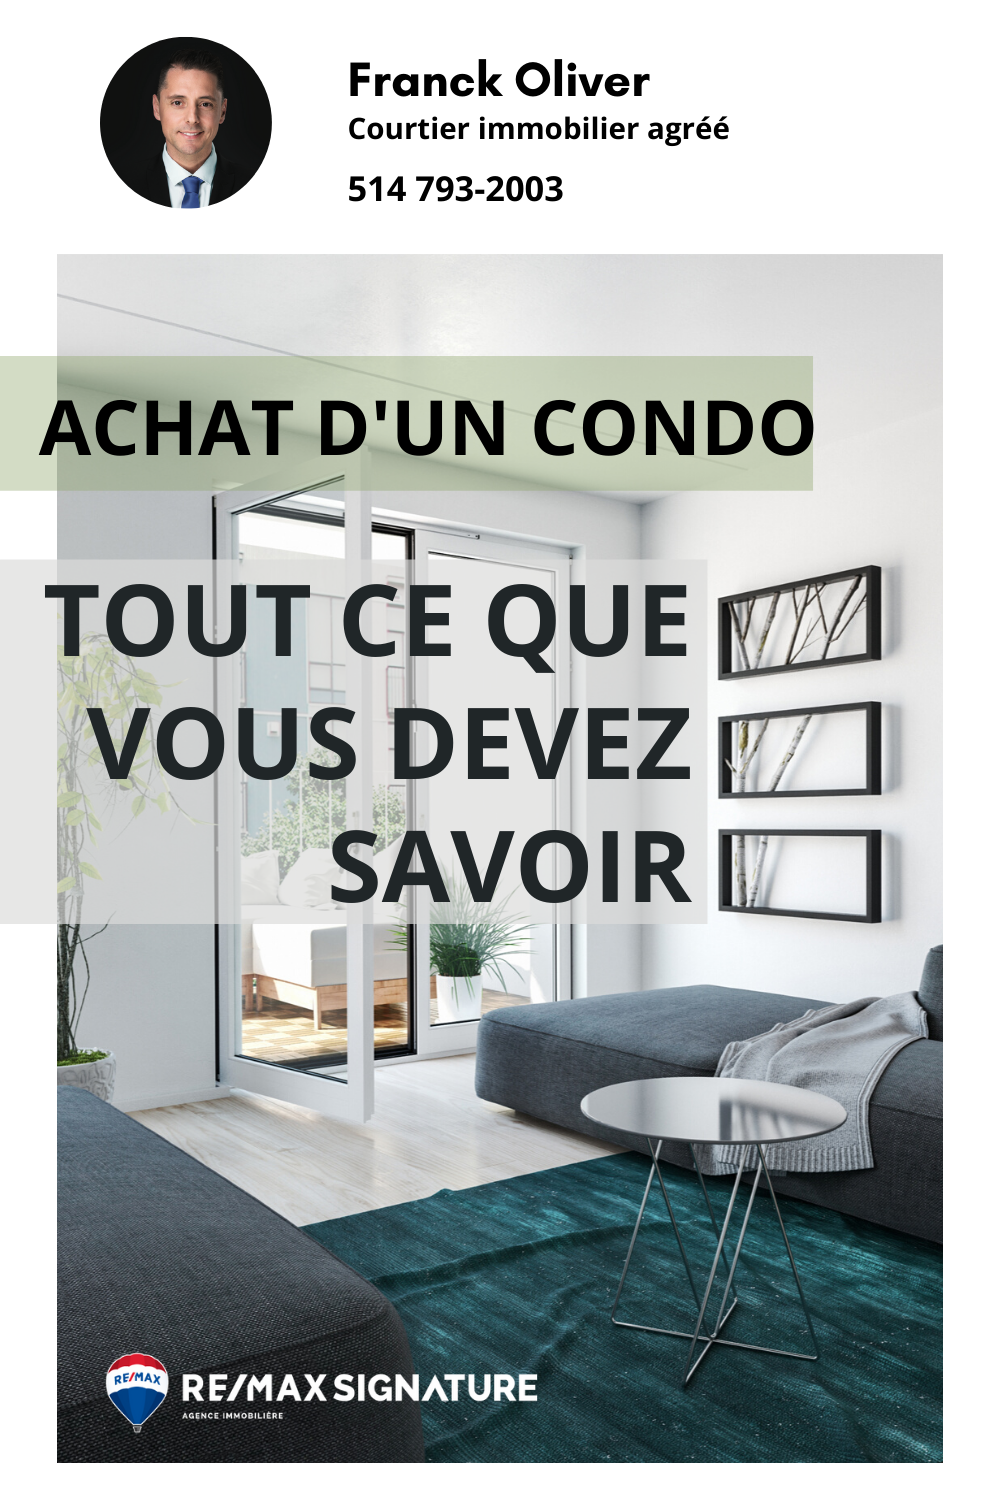 Pin On Franck Oliver Courtier Immobilier